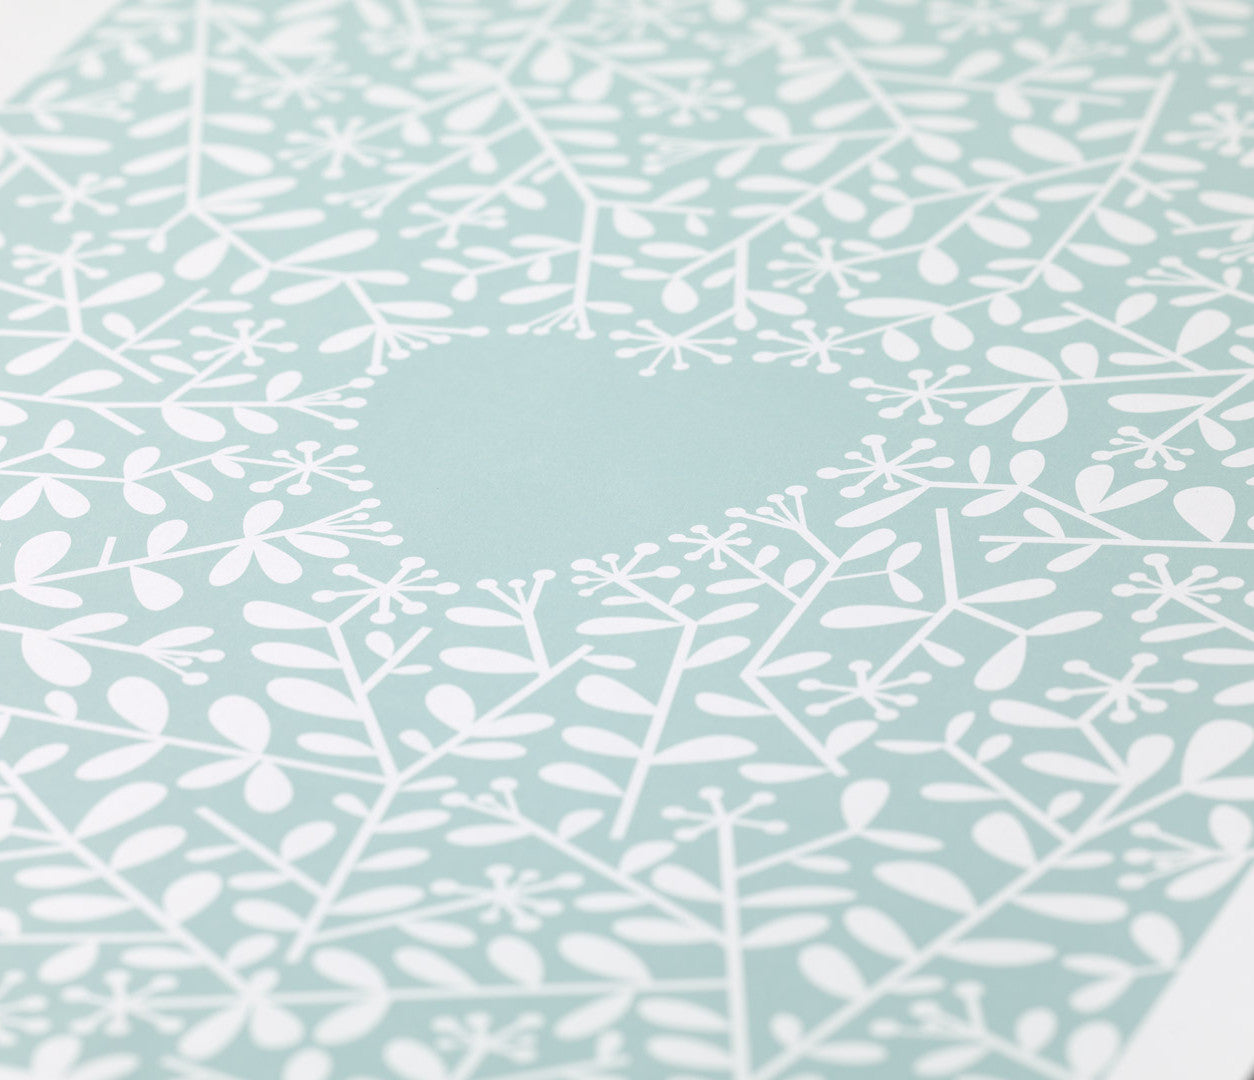 'Love Grows' Art Print in Duck Egg Blue